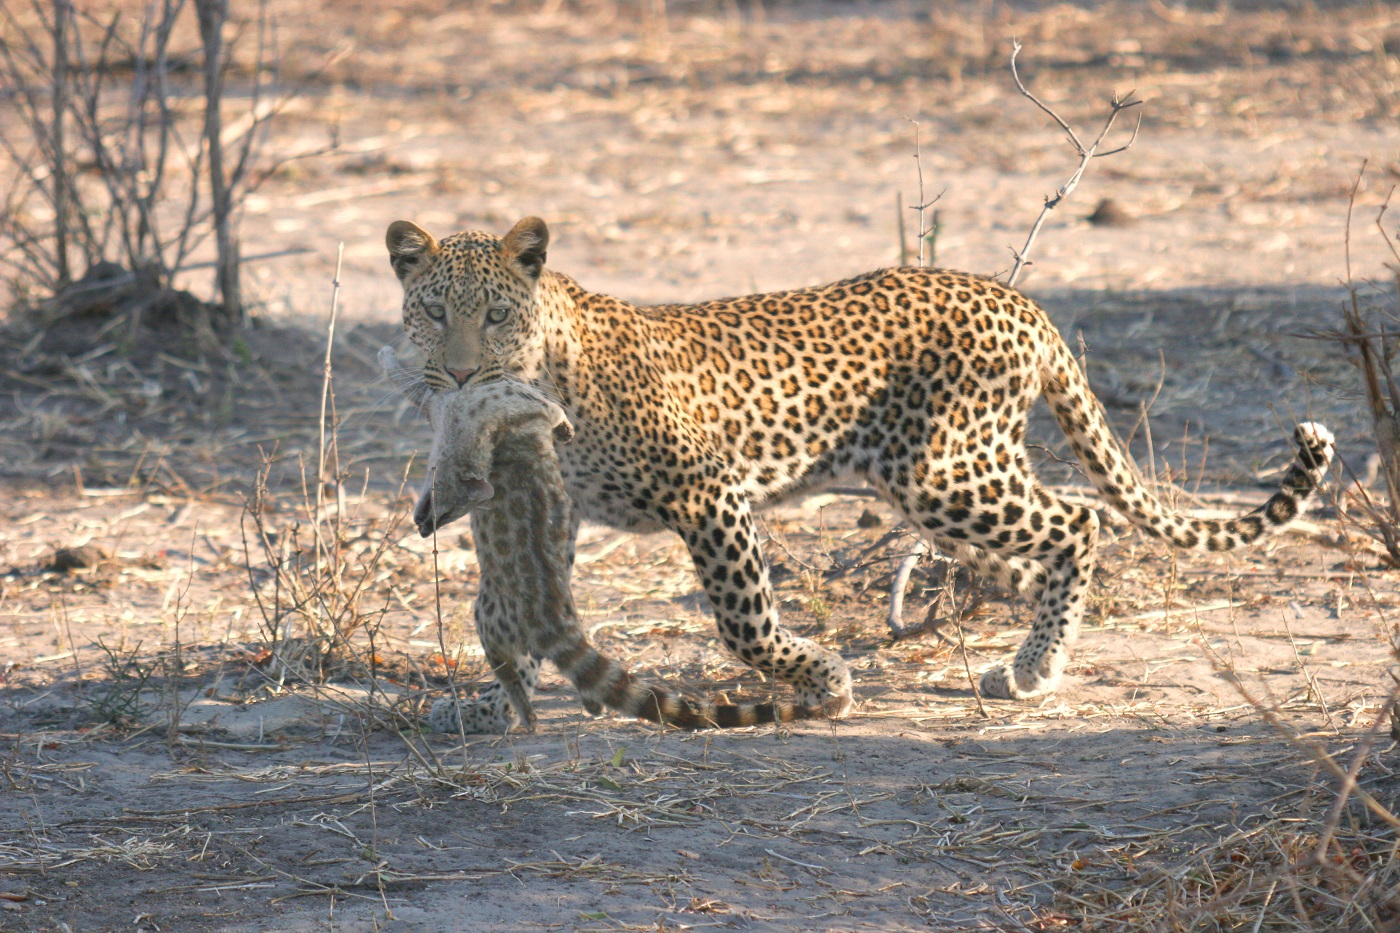 A rare leopard hunt and kill sighting!